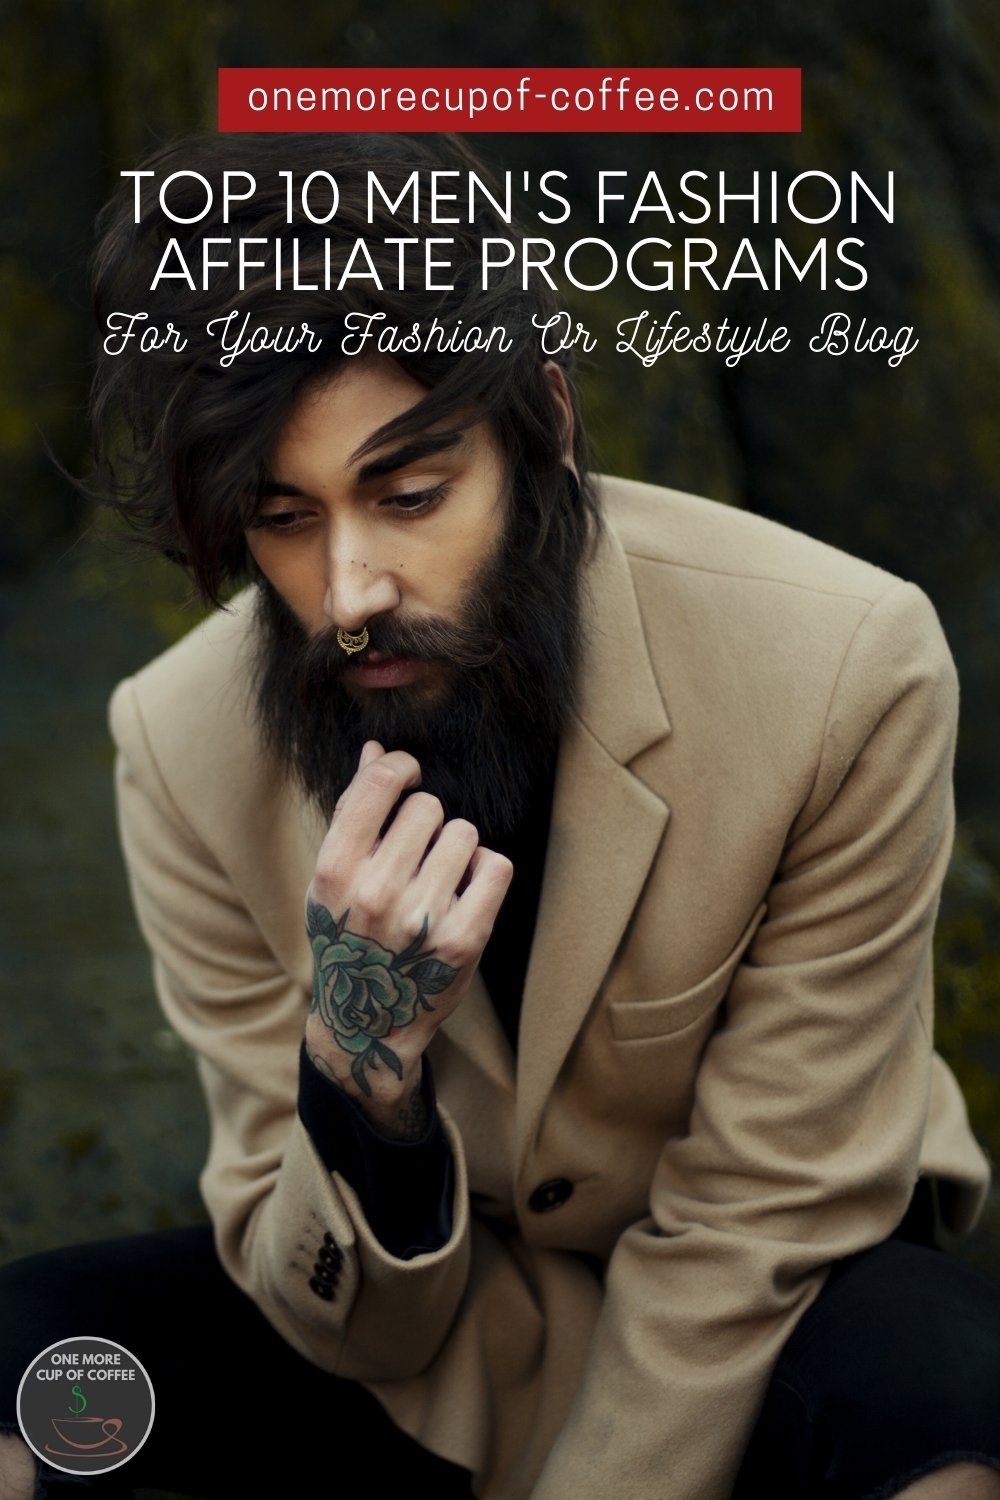 """fully bearded male model sporting a brown coat, with text overlay """"Top 10 Men's Fashion Affiliate Programs For Your Fashion Or Lifestyle Blog"""""""